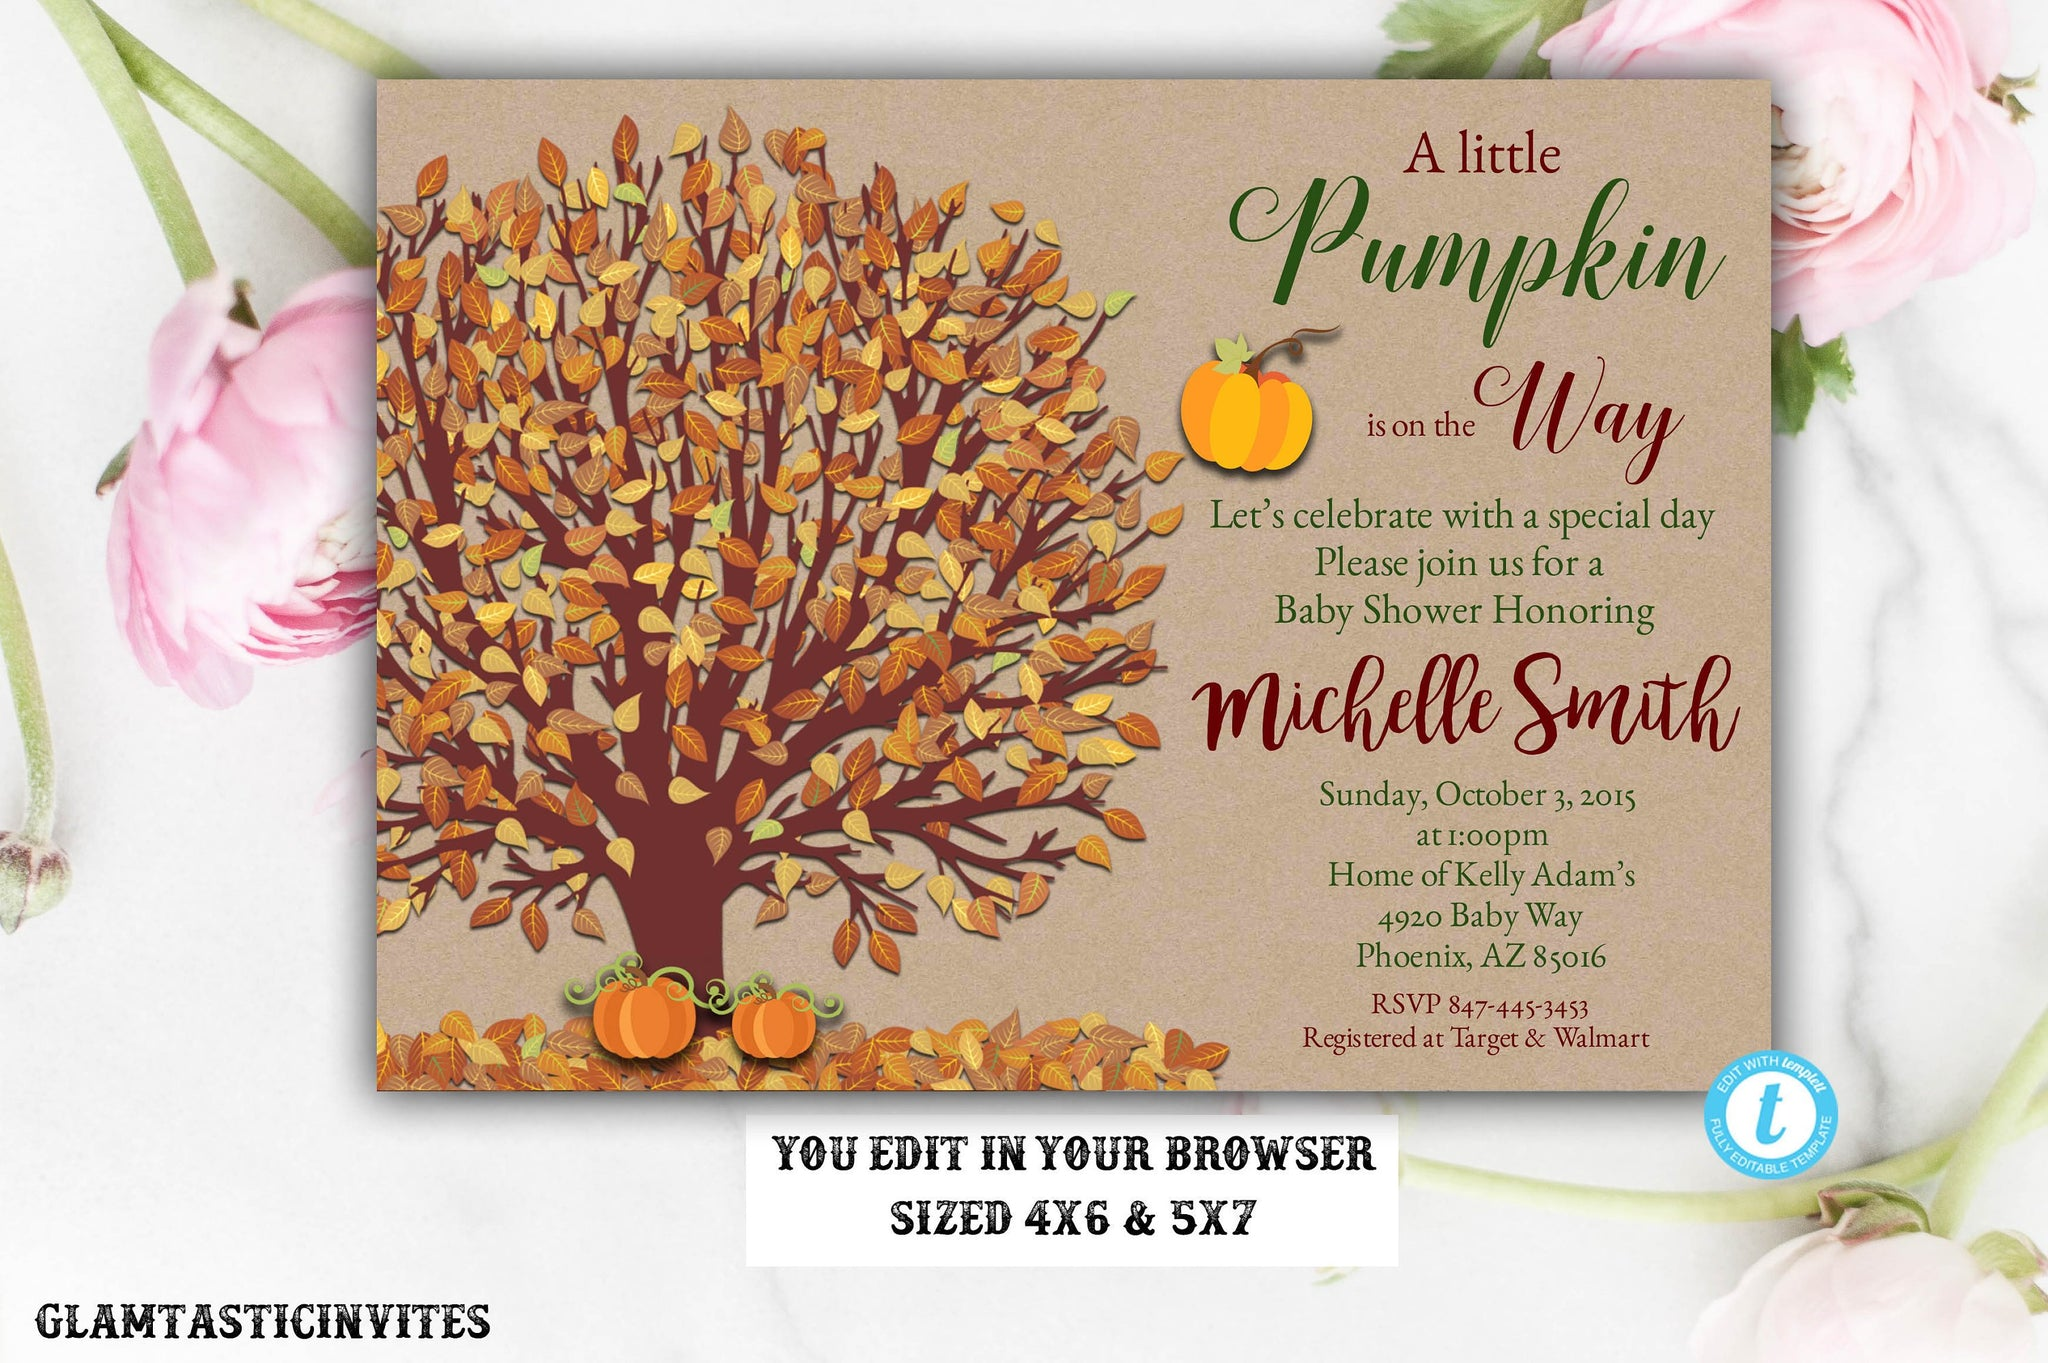 Pumpkin Baby Shower Invite, Little Pumpkin Baby Shower Invitation, Fall Baby Shower Invite, Baby Shower Template, Baby Shower Invitation